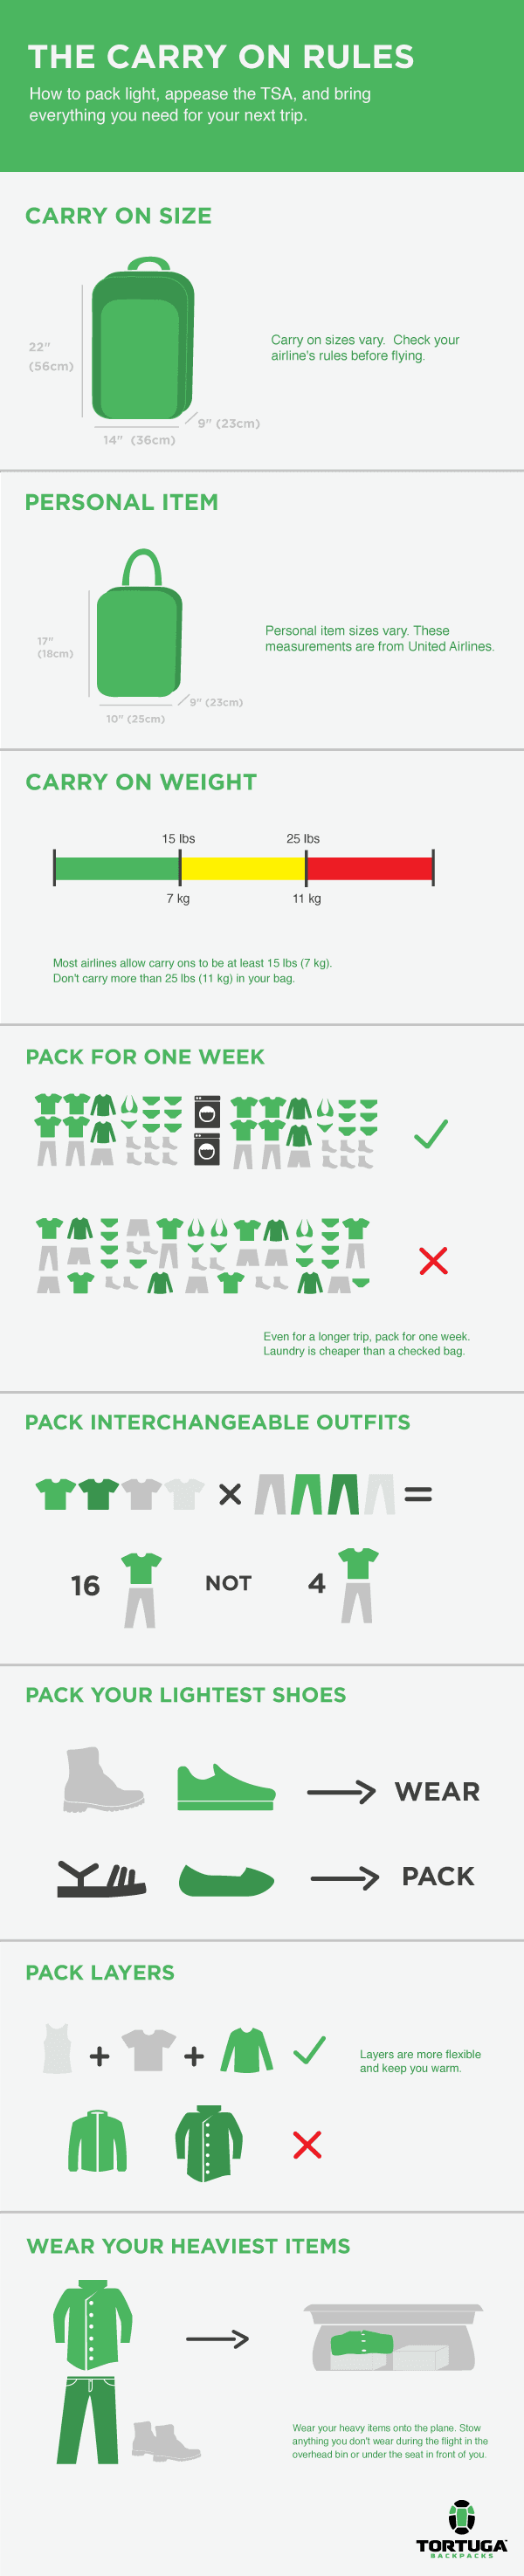 carry-on-rules-infographic